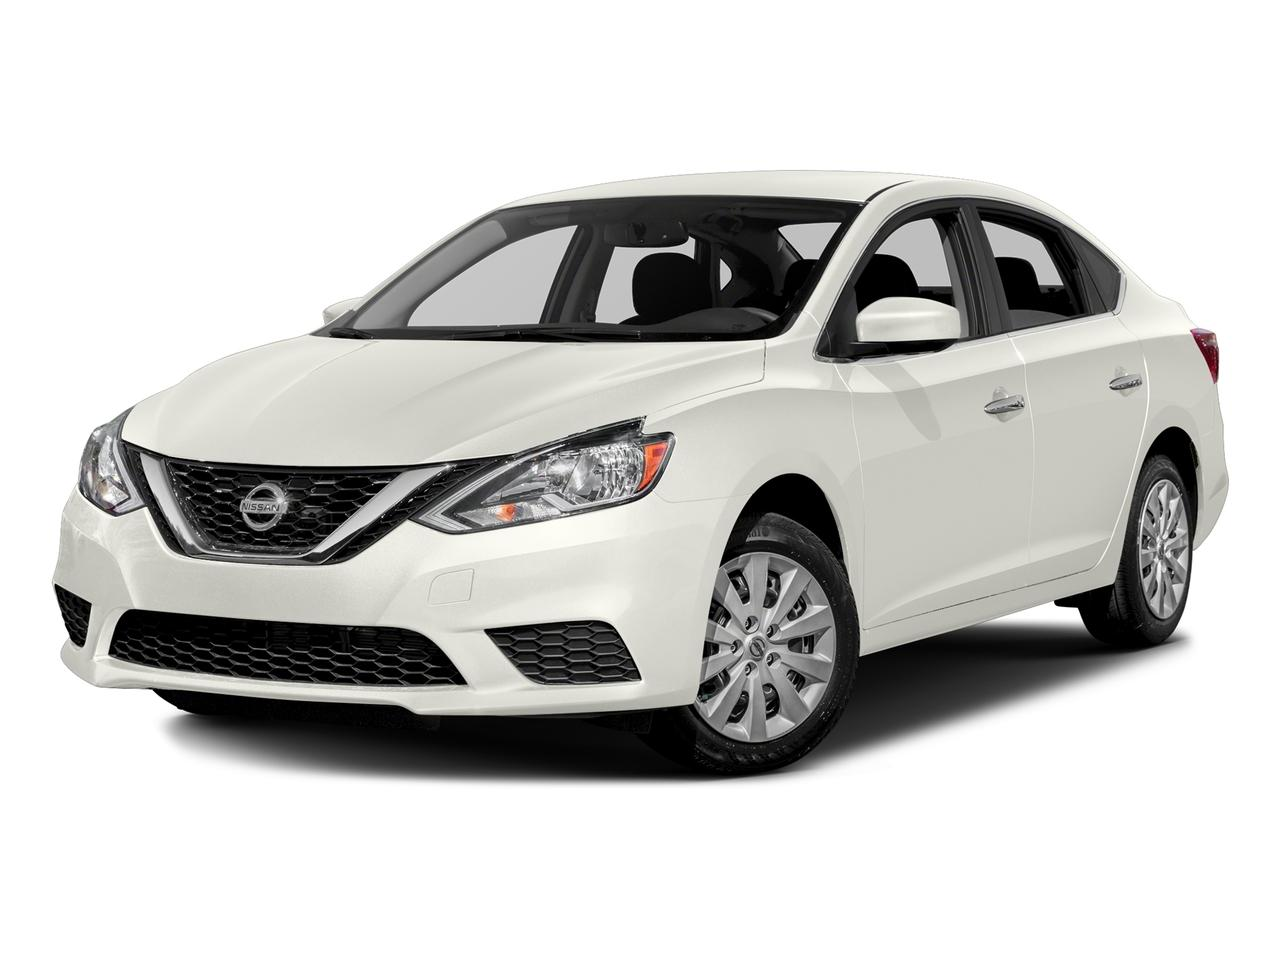 2017 Nissan Sentra Vehicle Photo in Owensboro, KY 42302